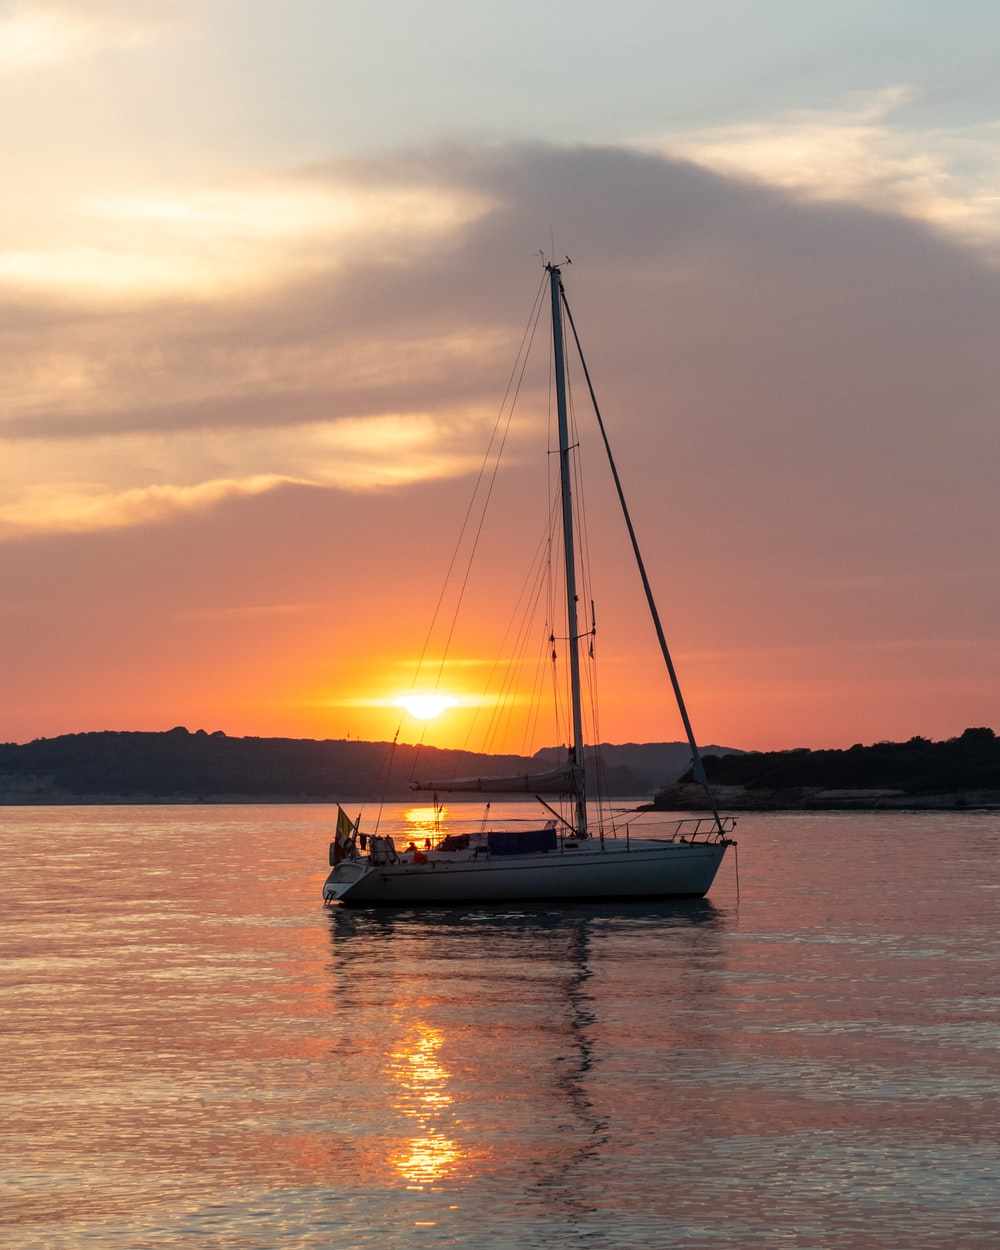 white sail boat on body of water during sunset